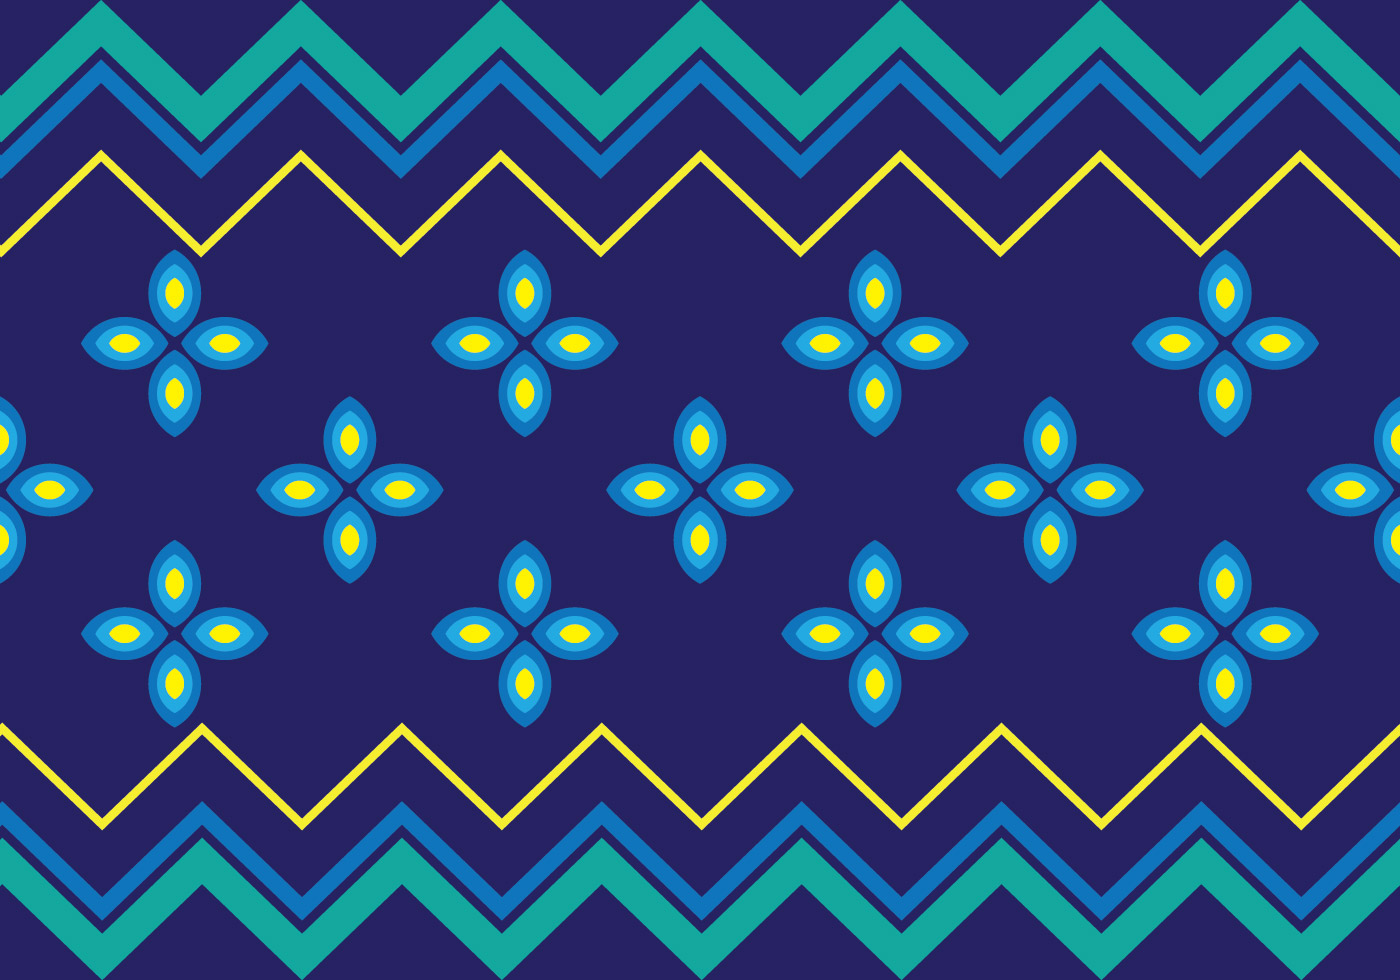 Traditional Songket - Download Free Vector Art, Stock